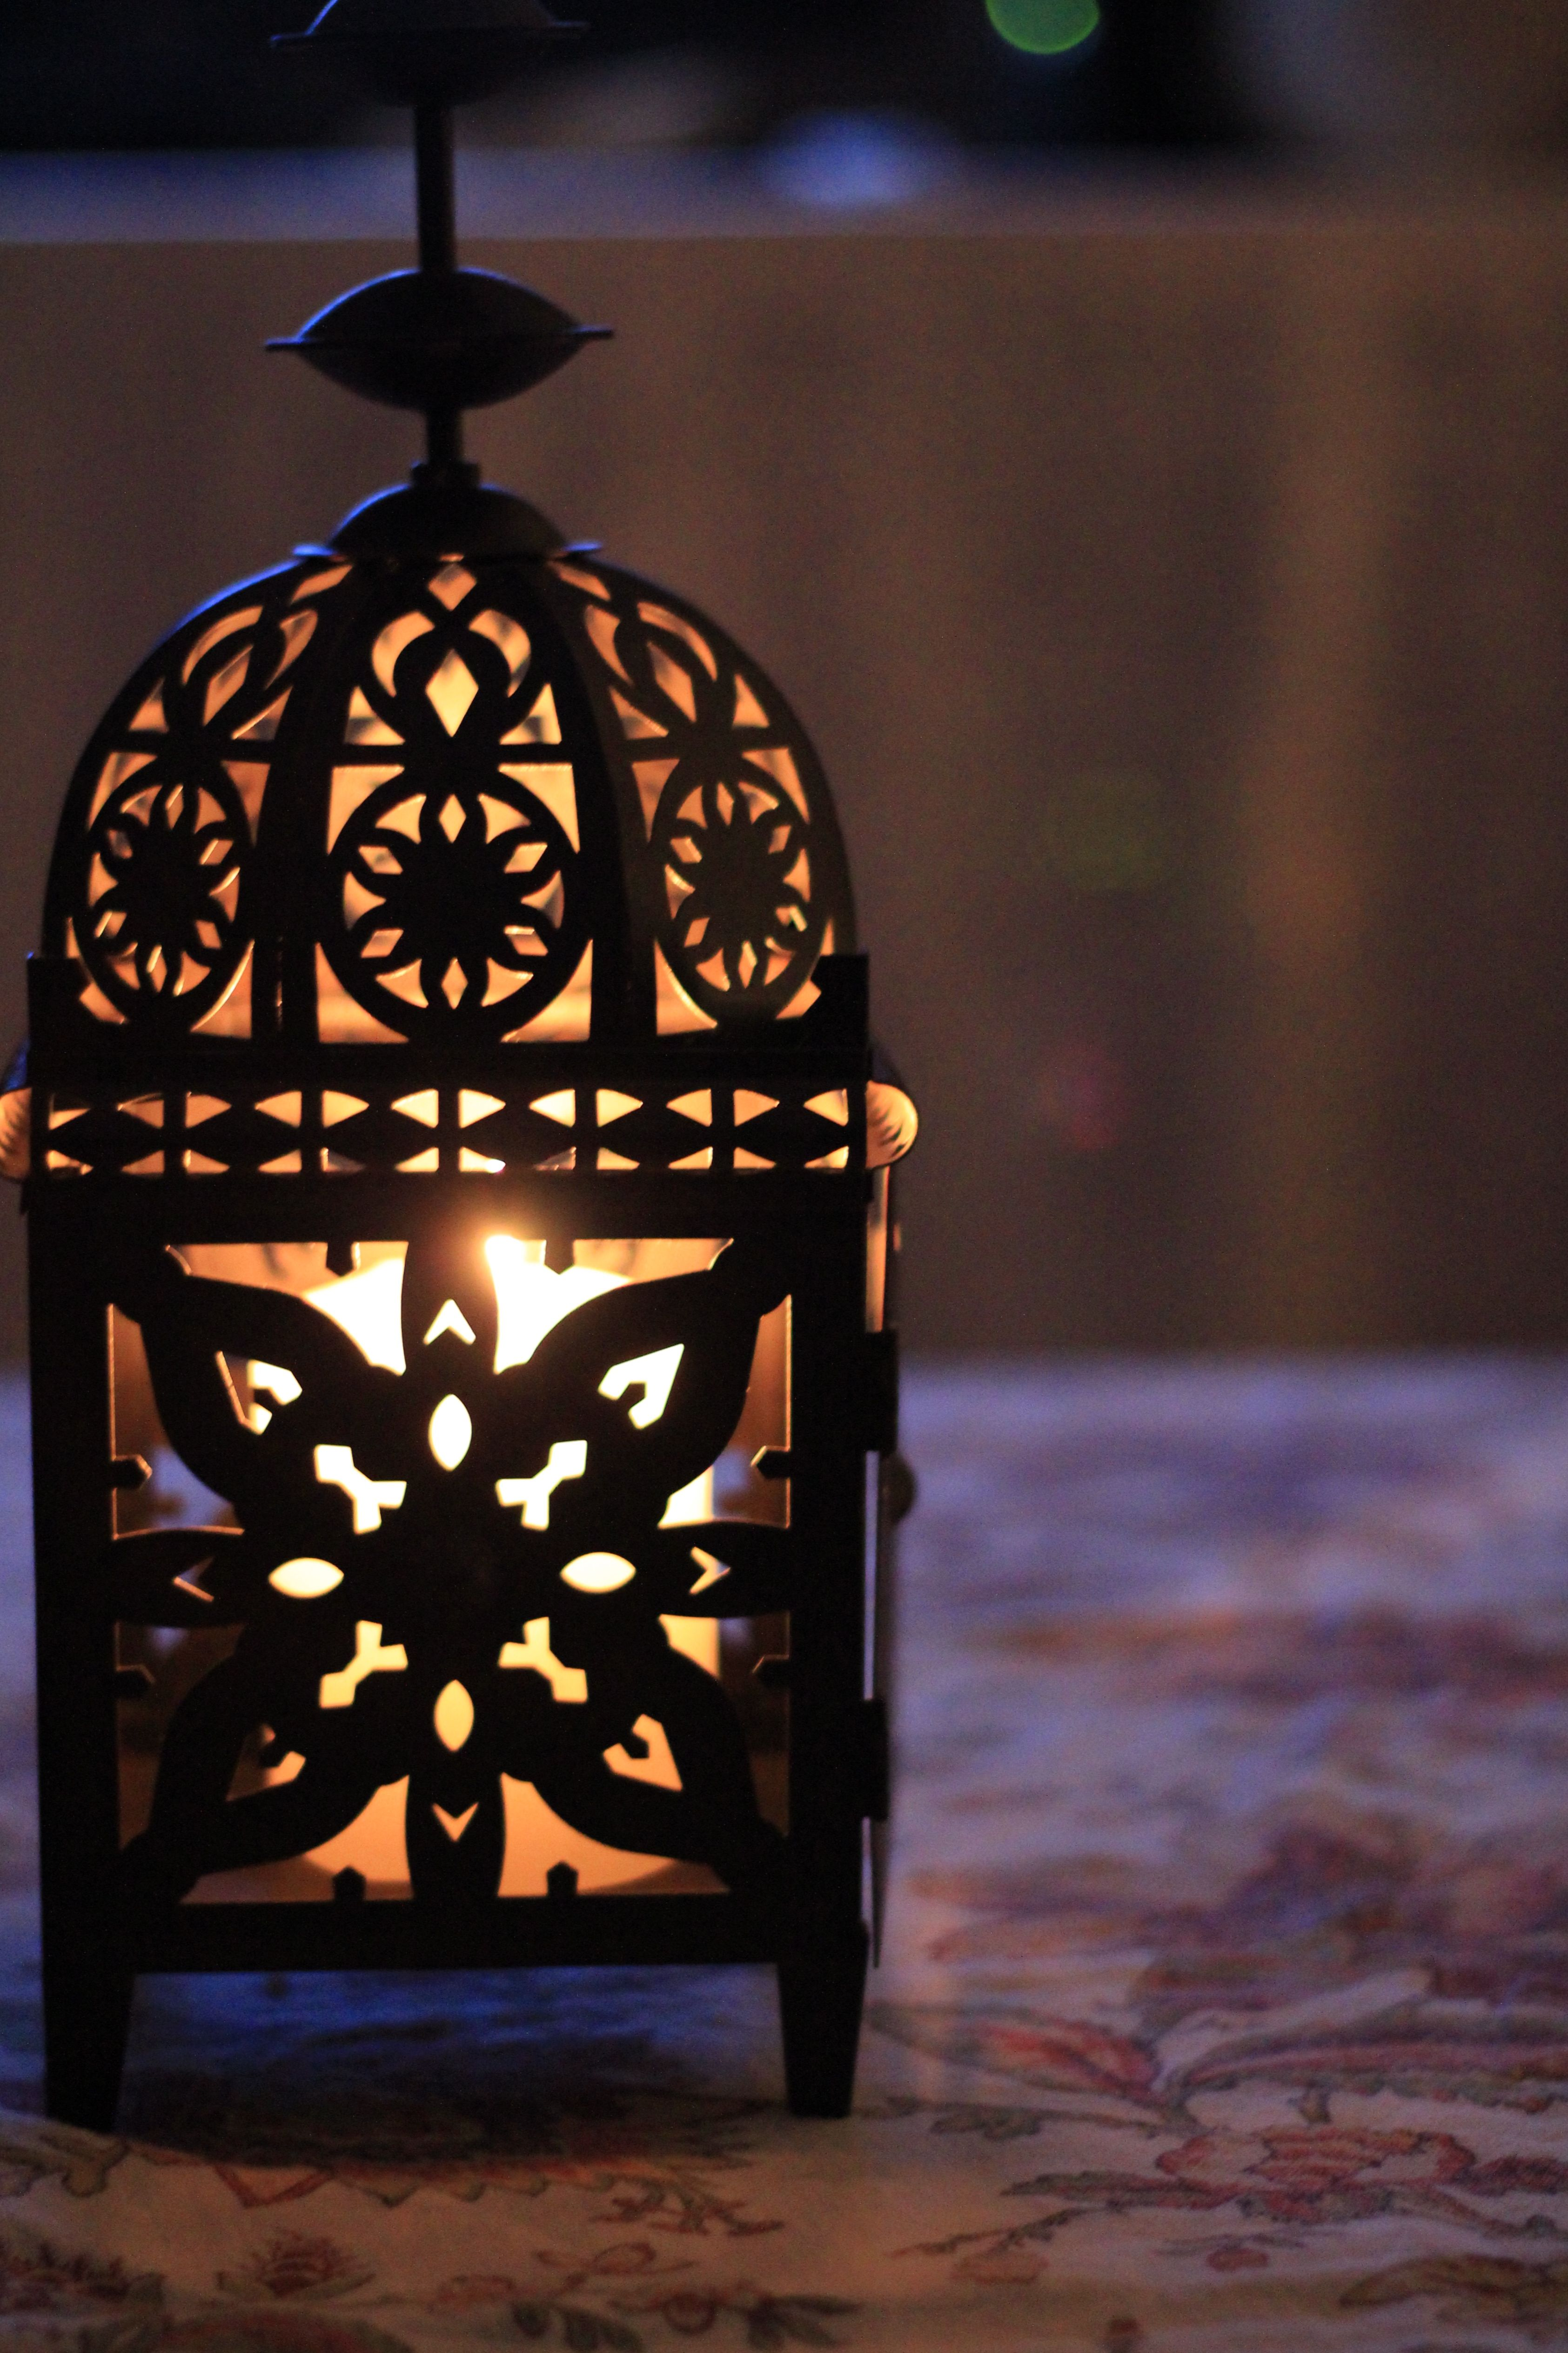 Ramadan Is The Ninth Month Of Islamic Calendar Muslims Worldwide Observe This As A